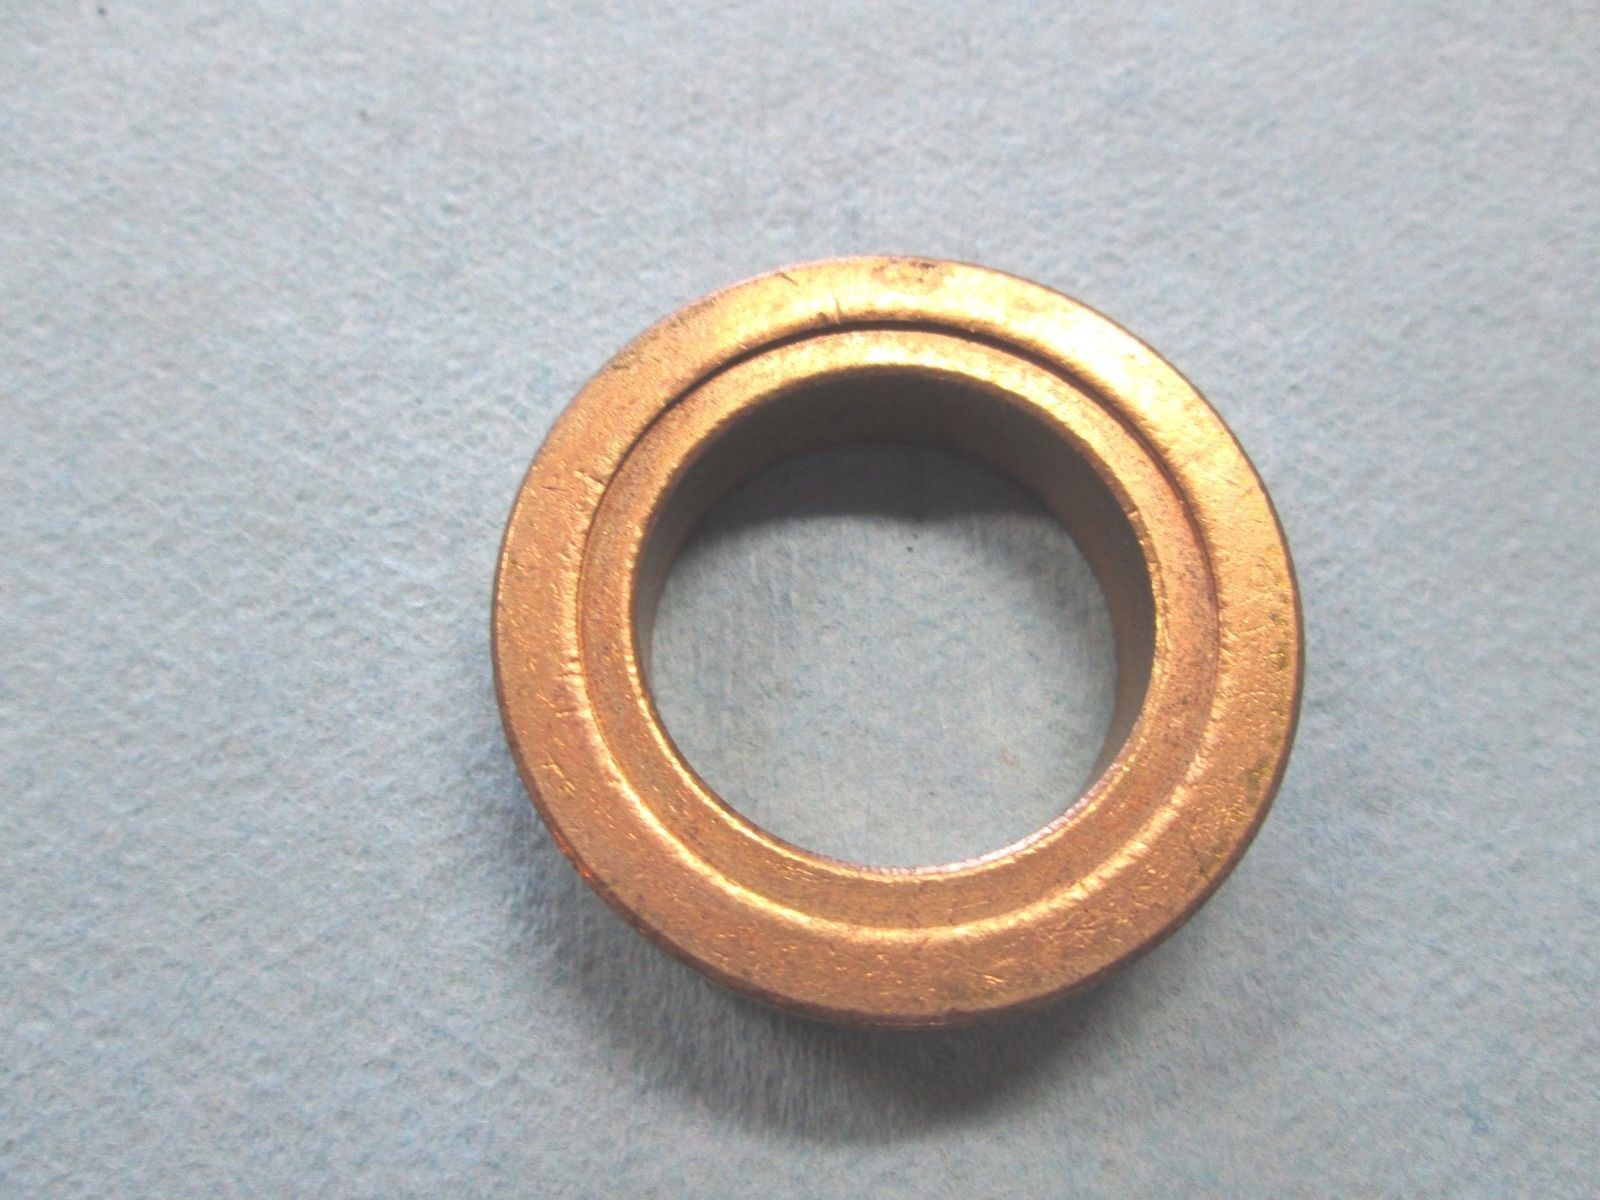 Primary image for AG2010, 391-0481-001, Brass Bushing Shaft, P37X